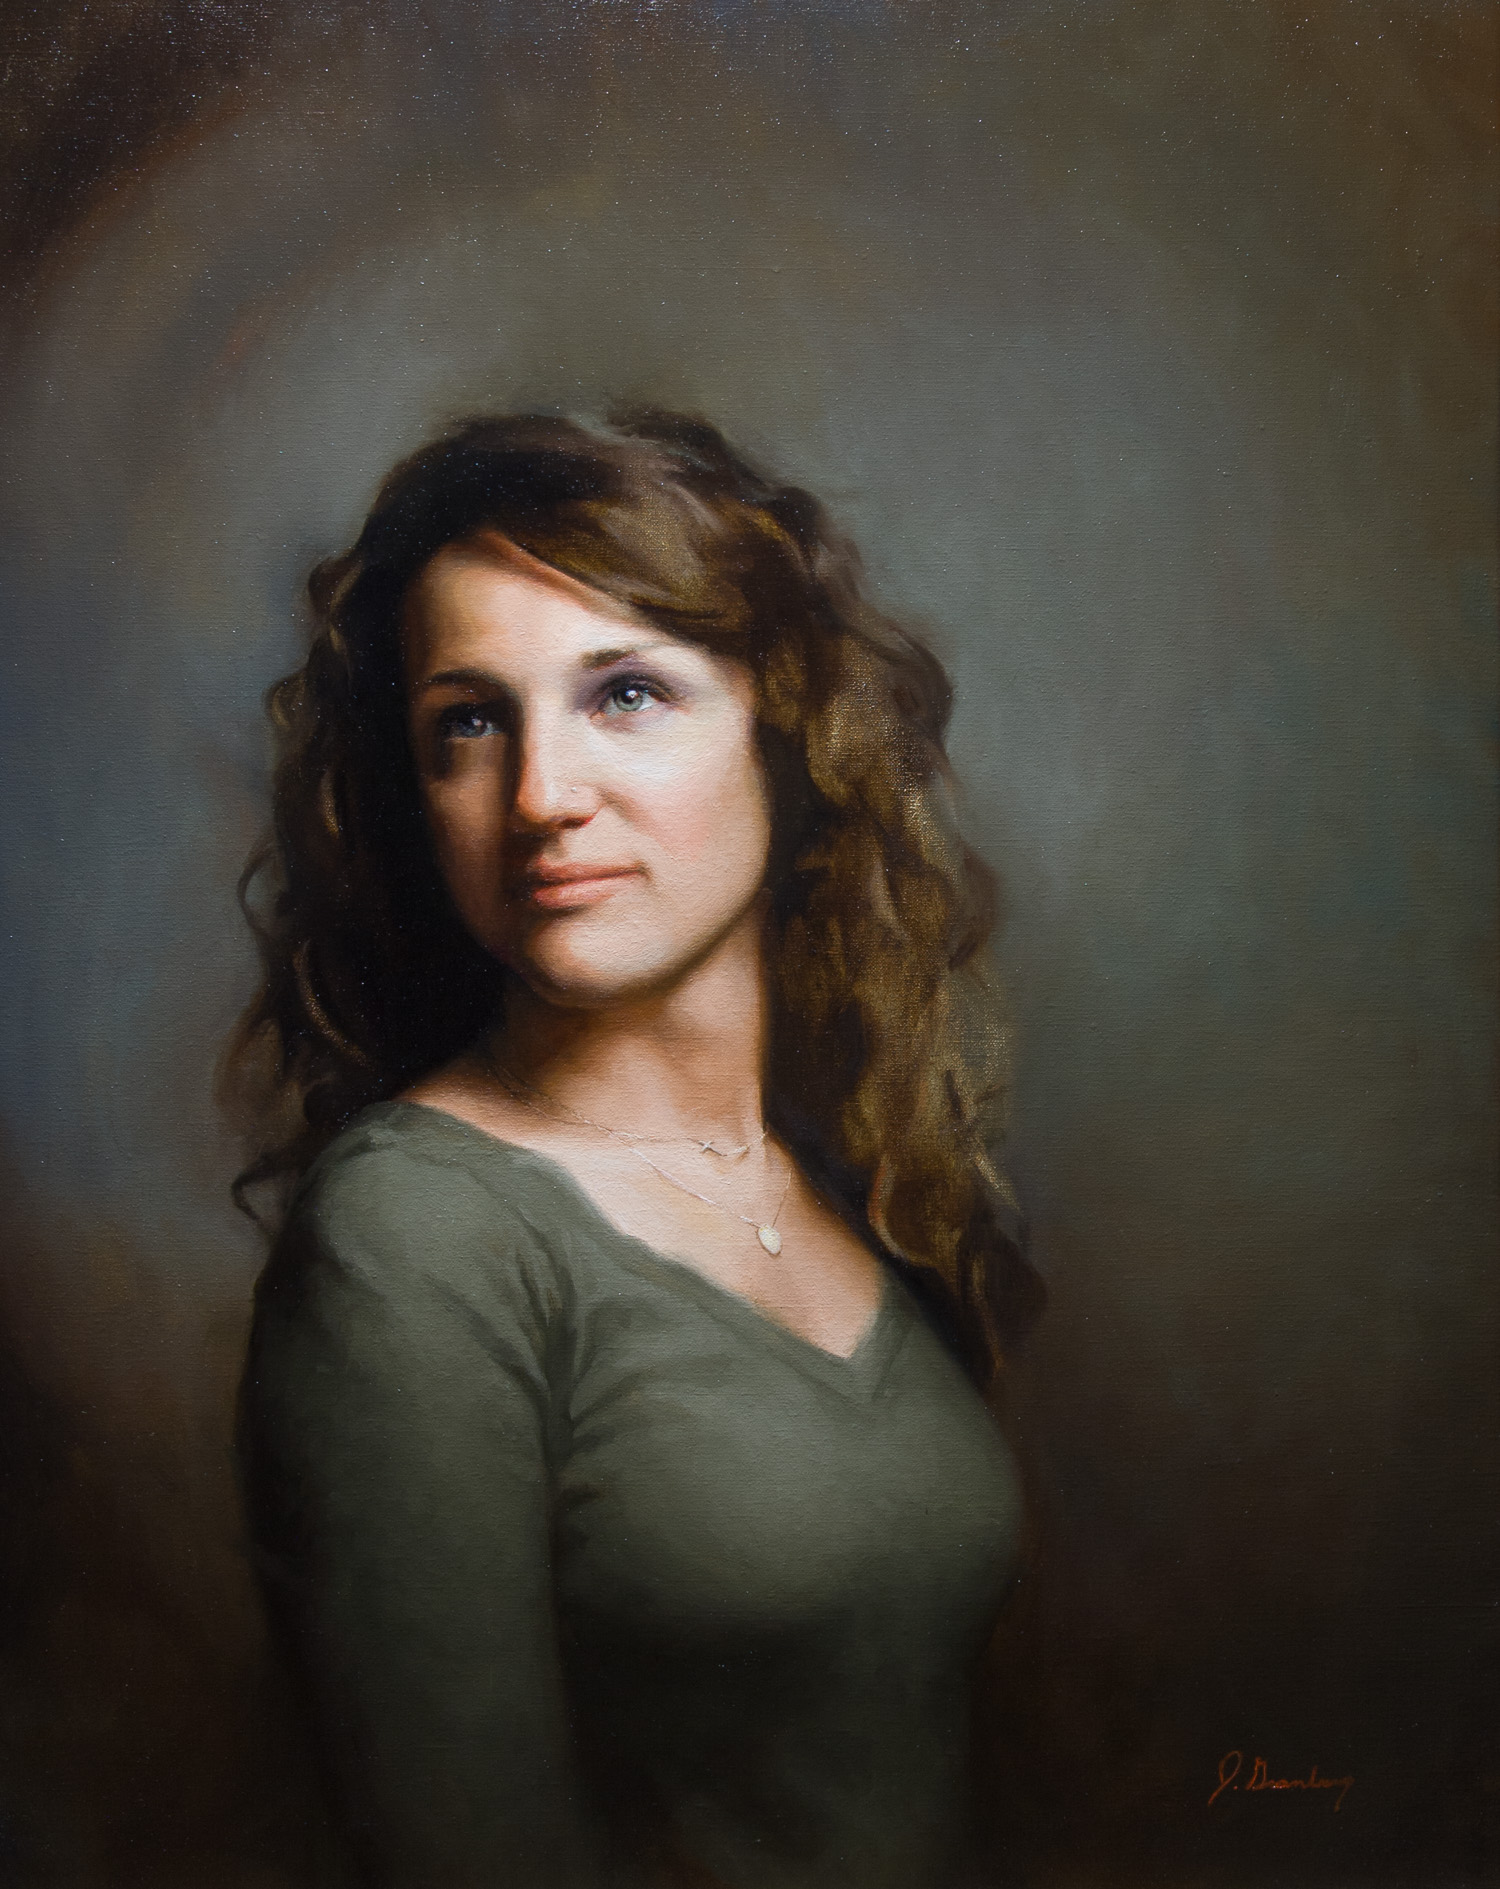 Bethany - 22x26 inches